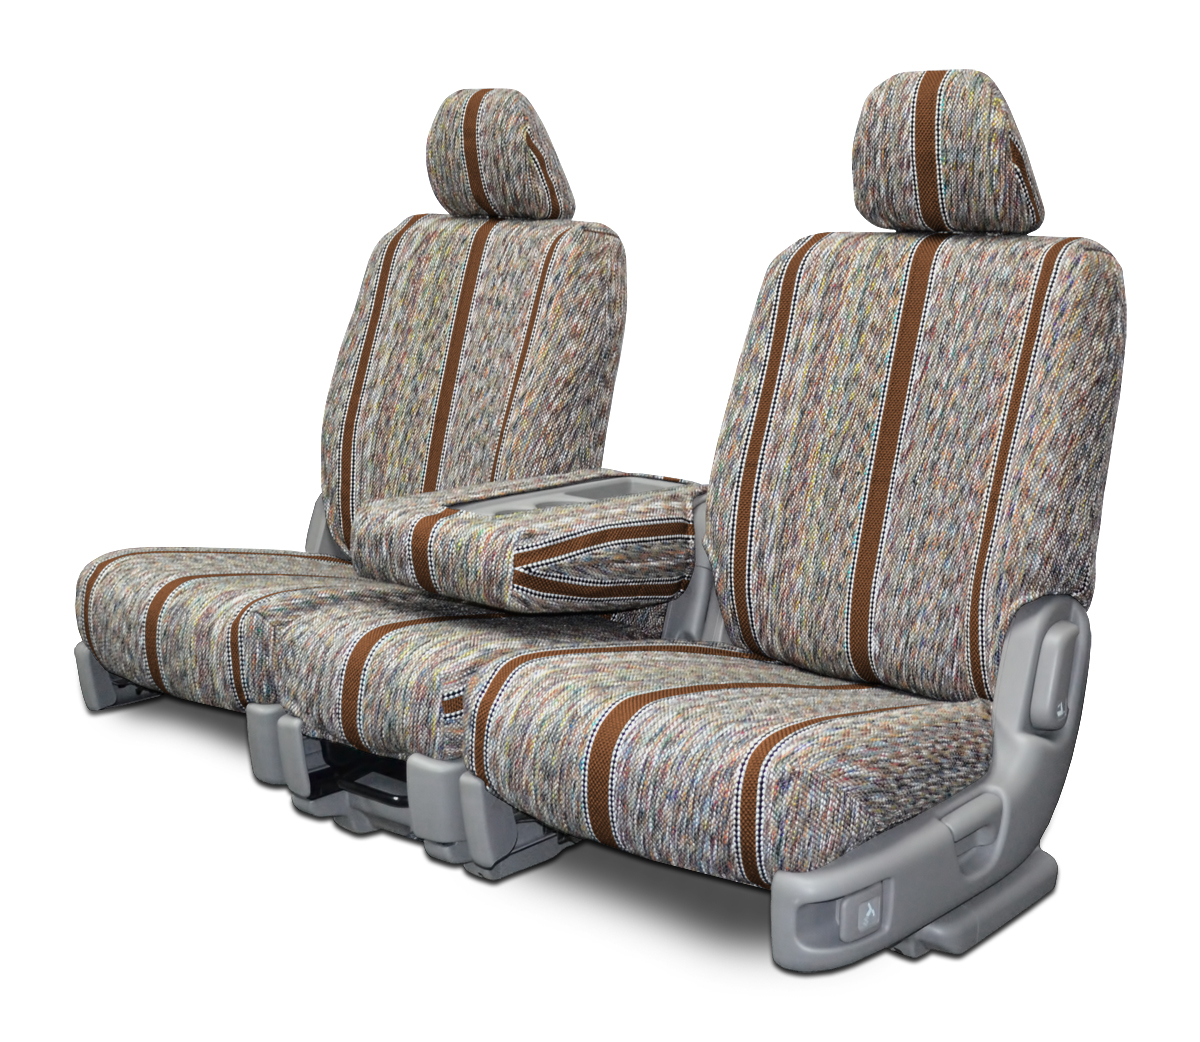 Saddle blanket seat covers seat covers unlimited publicscrutiny Images